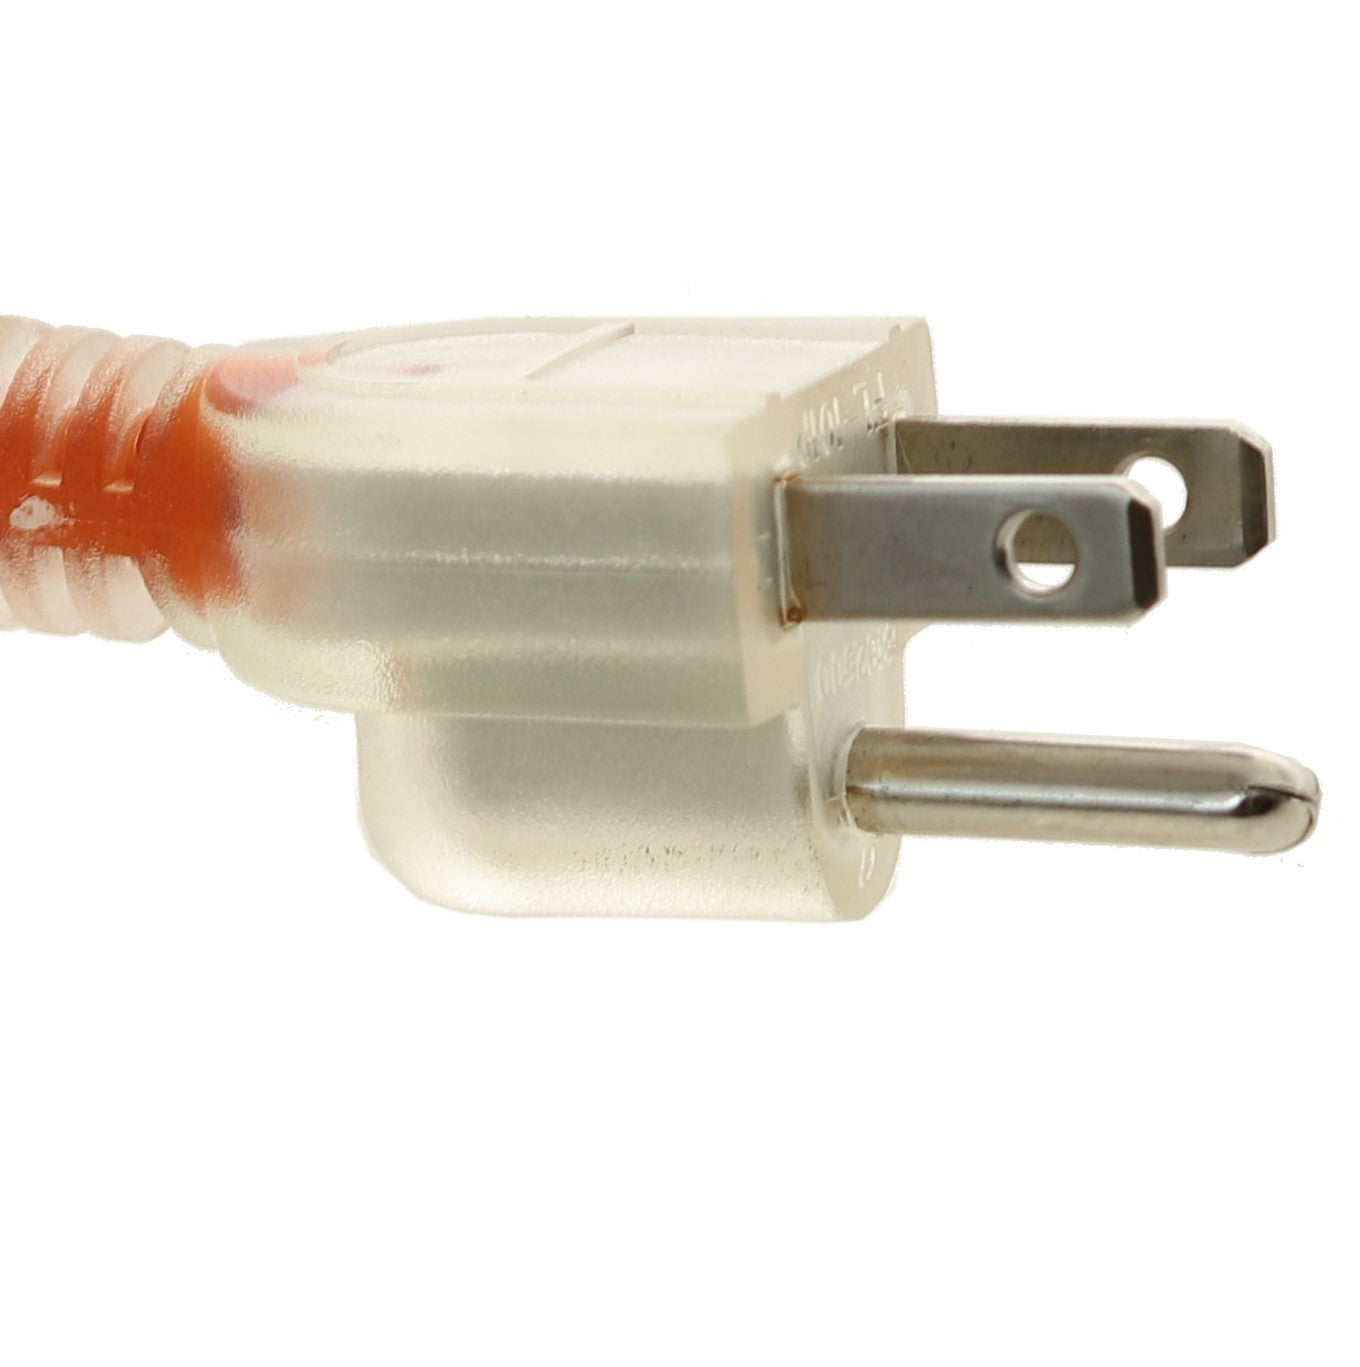 20FT SJTW 16-Gauge Lighted 3-Prong Plug - Outdoor Cord